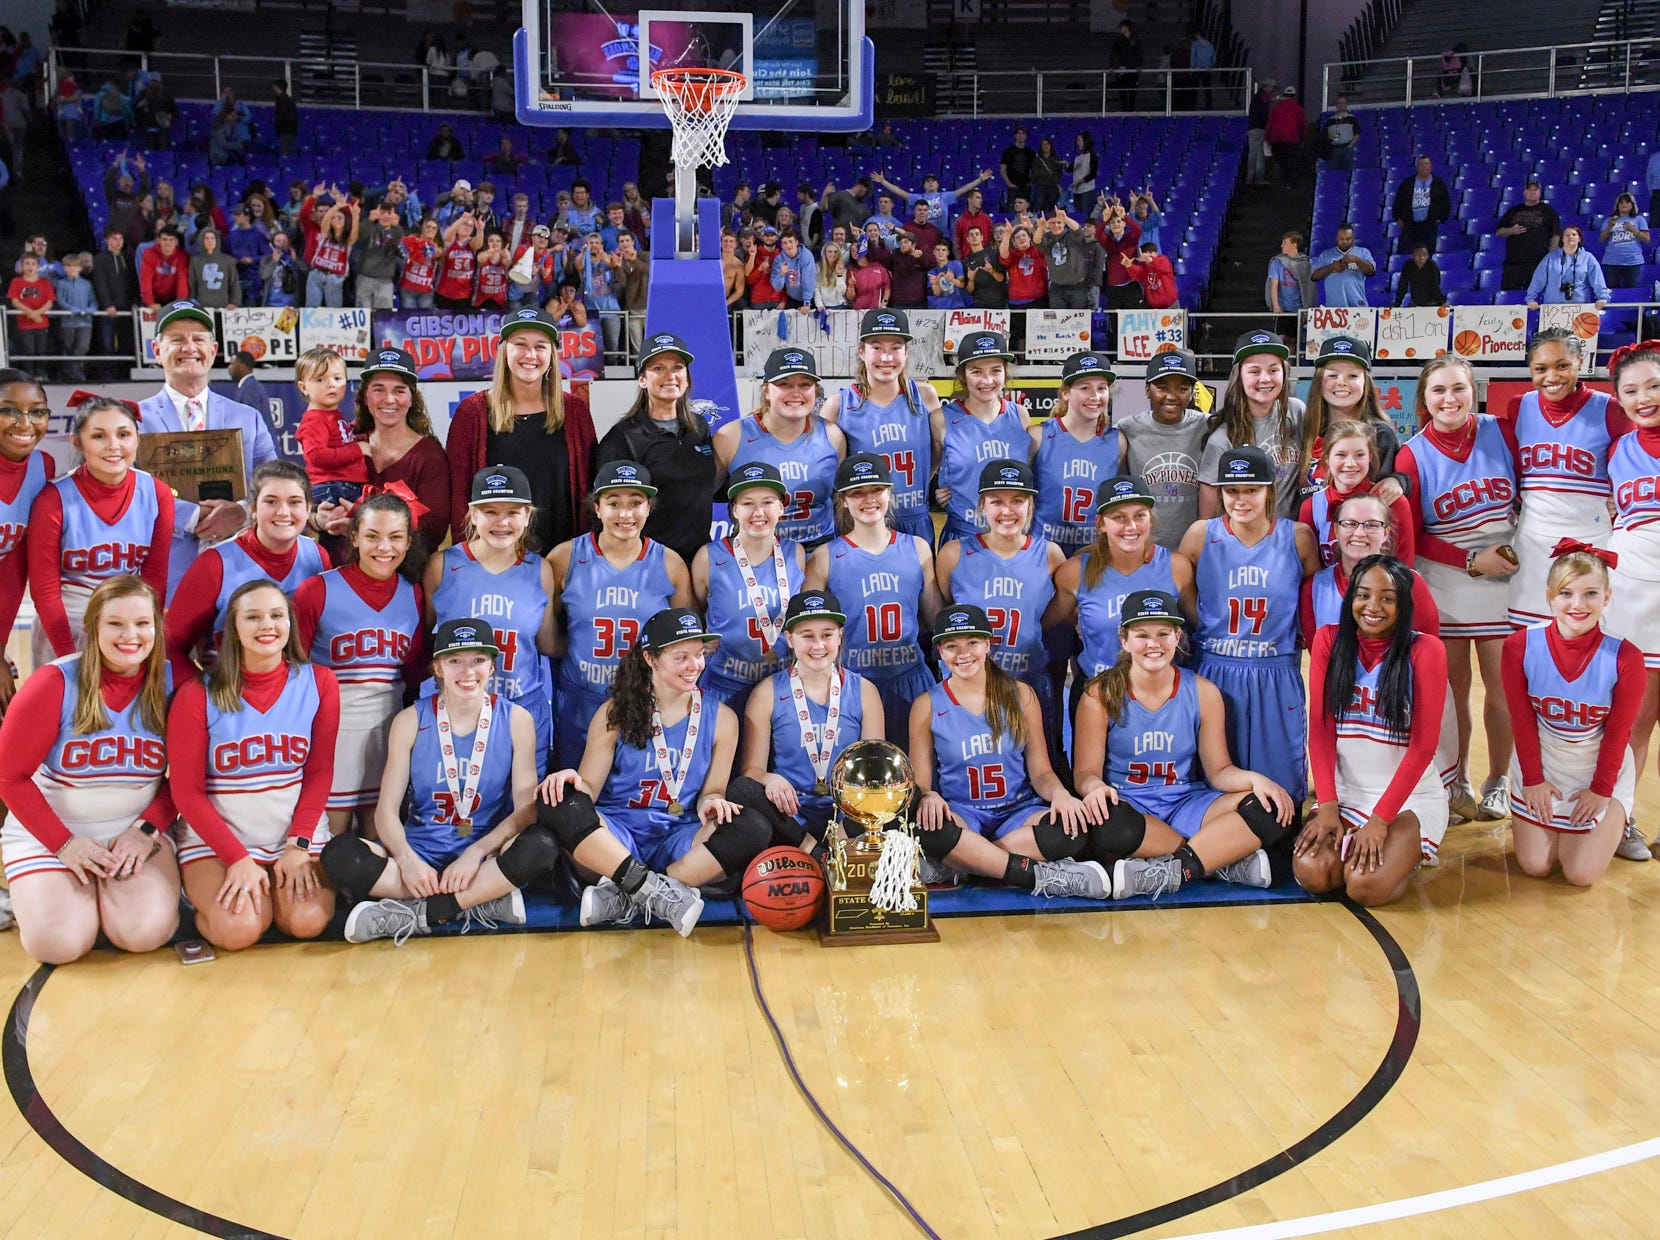 The Gibson County Lady Pioneers defeated Loretto, 50-42, to become the 2019 Class A Girls' Basketball Champions, Saturday, March 9, in Murfreesboro.